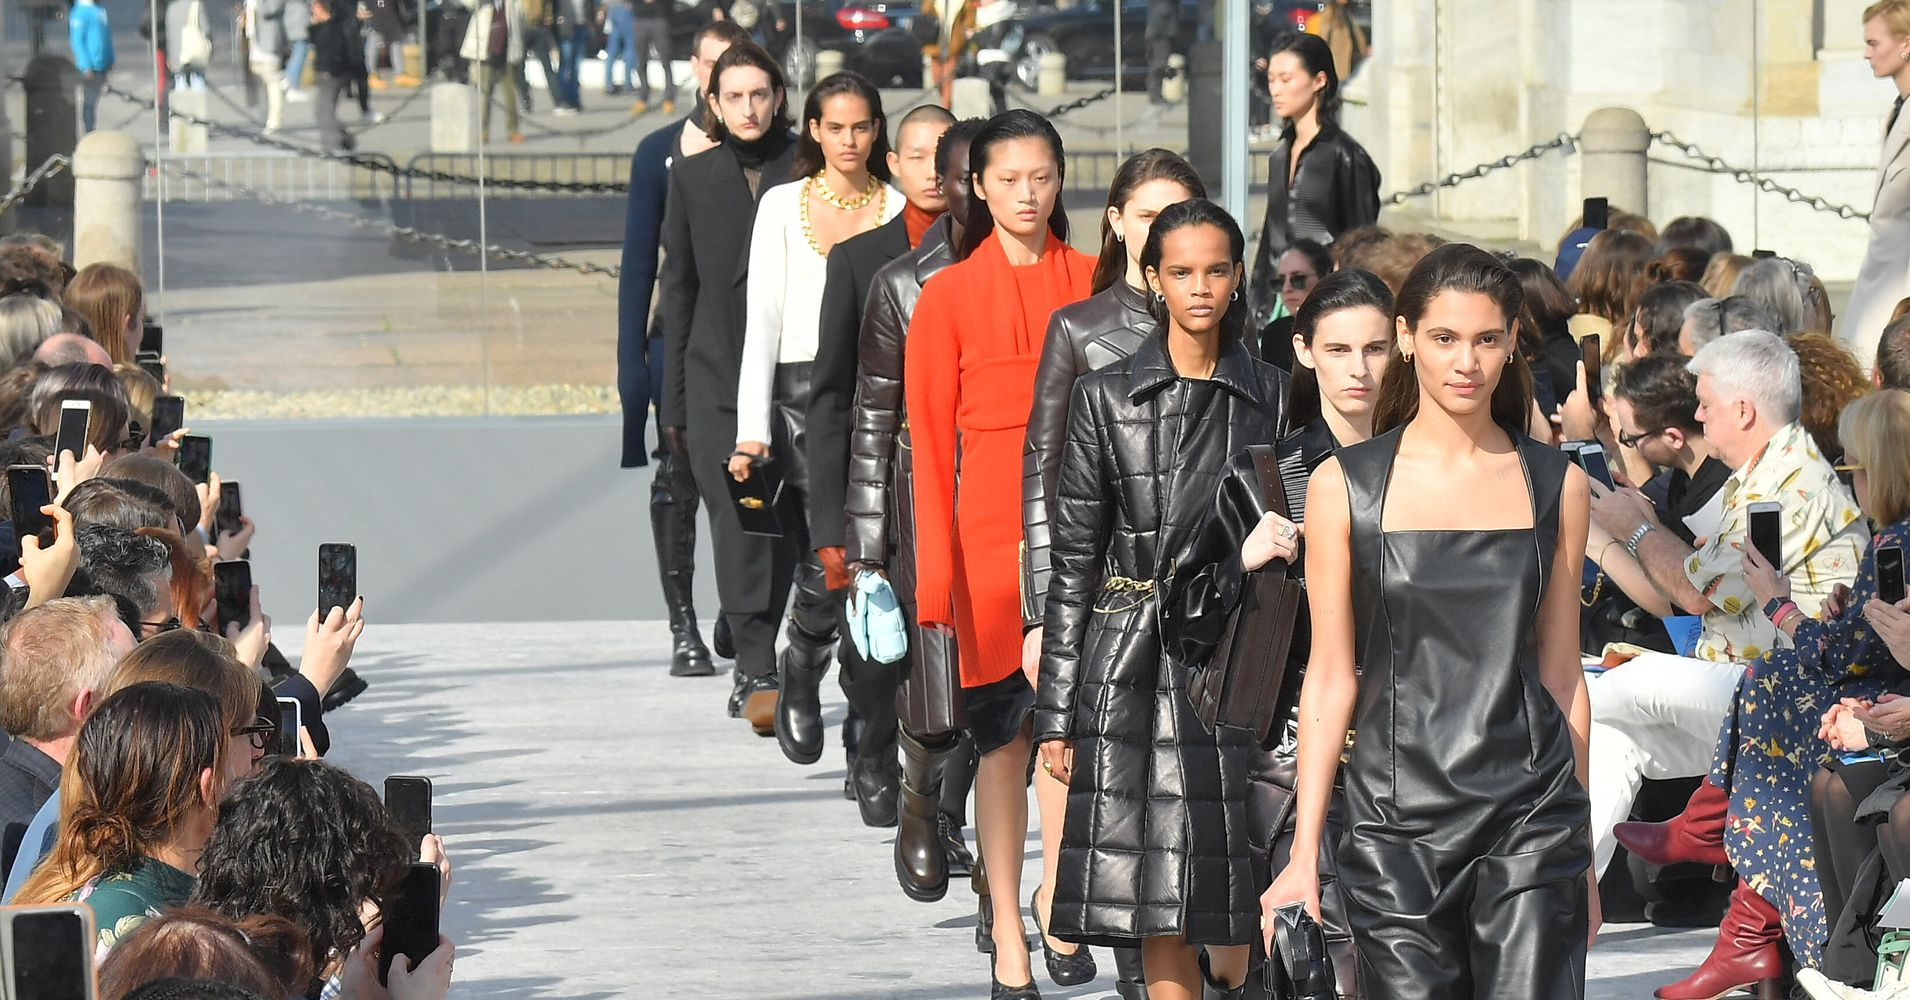 Major Fashion Group Announces It Won't Hire Models Under This Age